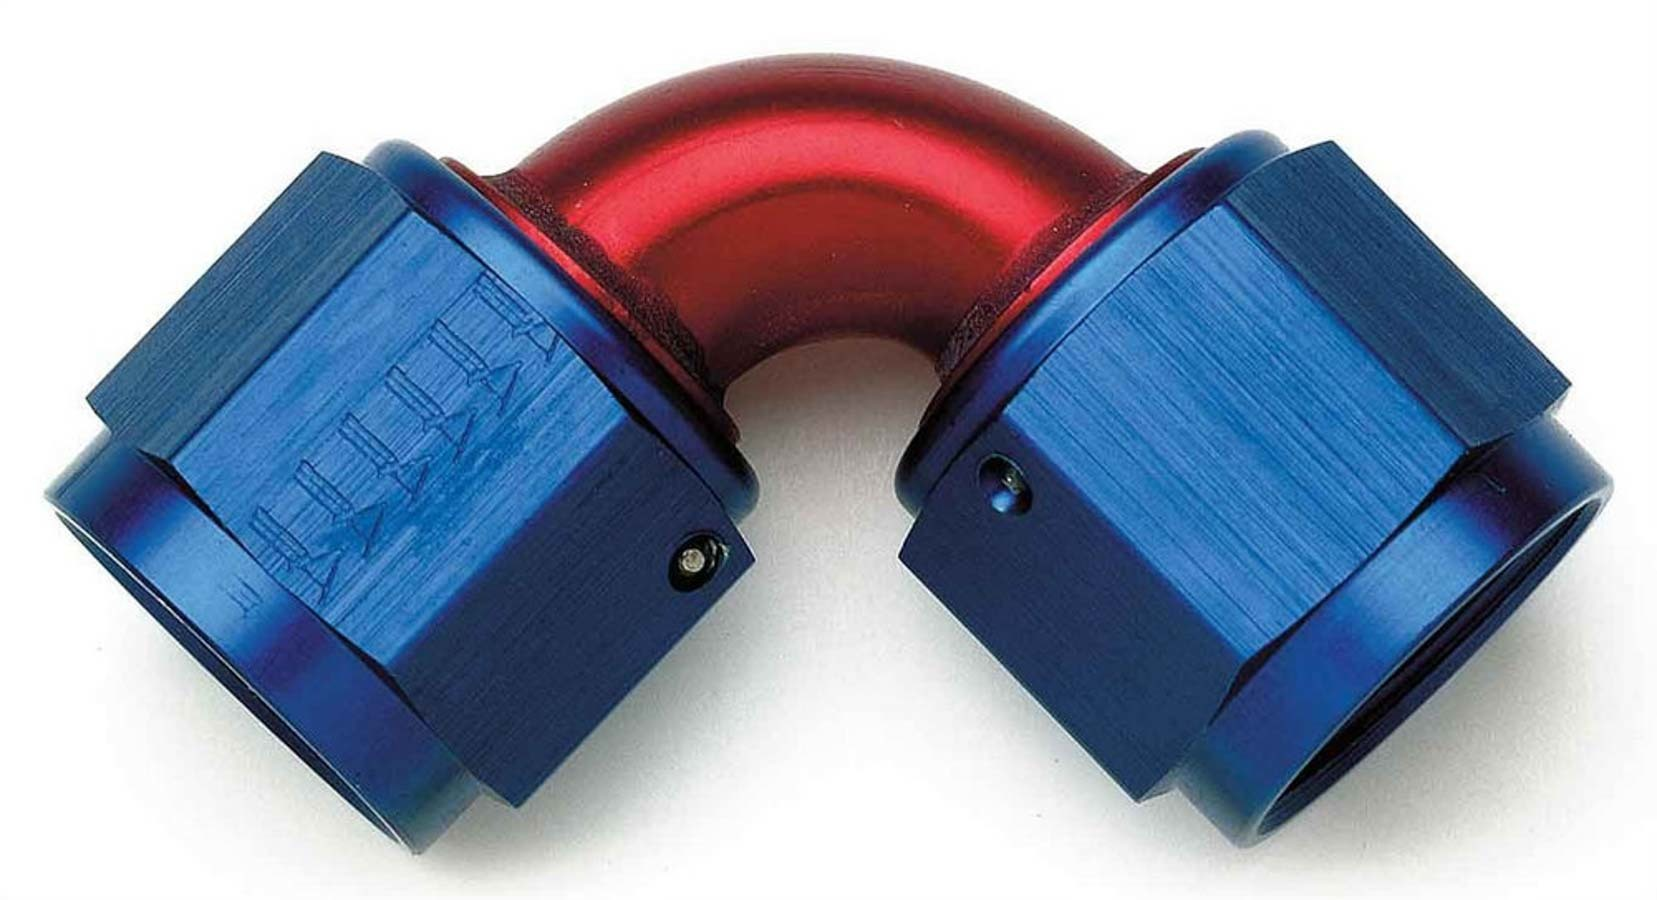 Aeroquip FCM2980 Fitting, Adapter, 90 Degree, 10 AN Female Swivel to 10 AN Female Swivel, Aluminum, Blue / Red Anodized, Each